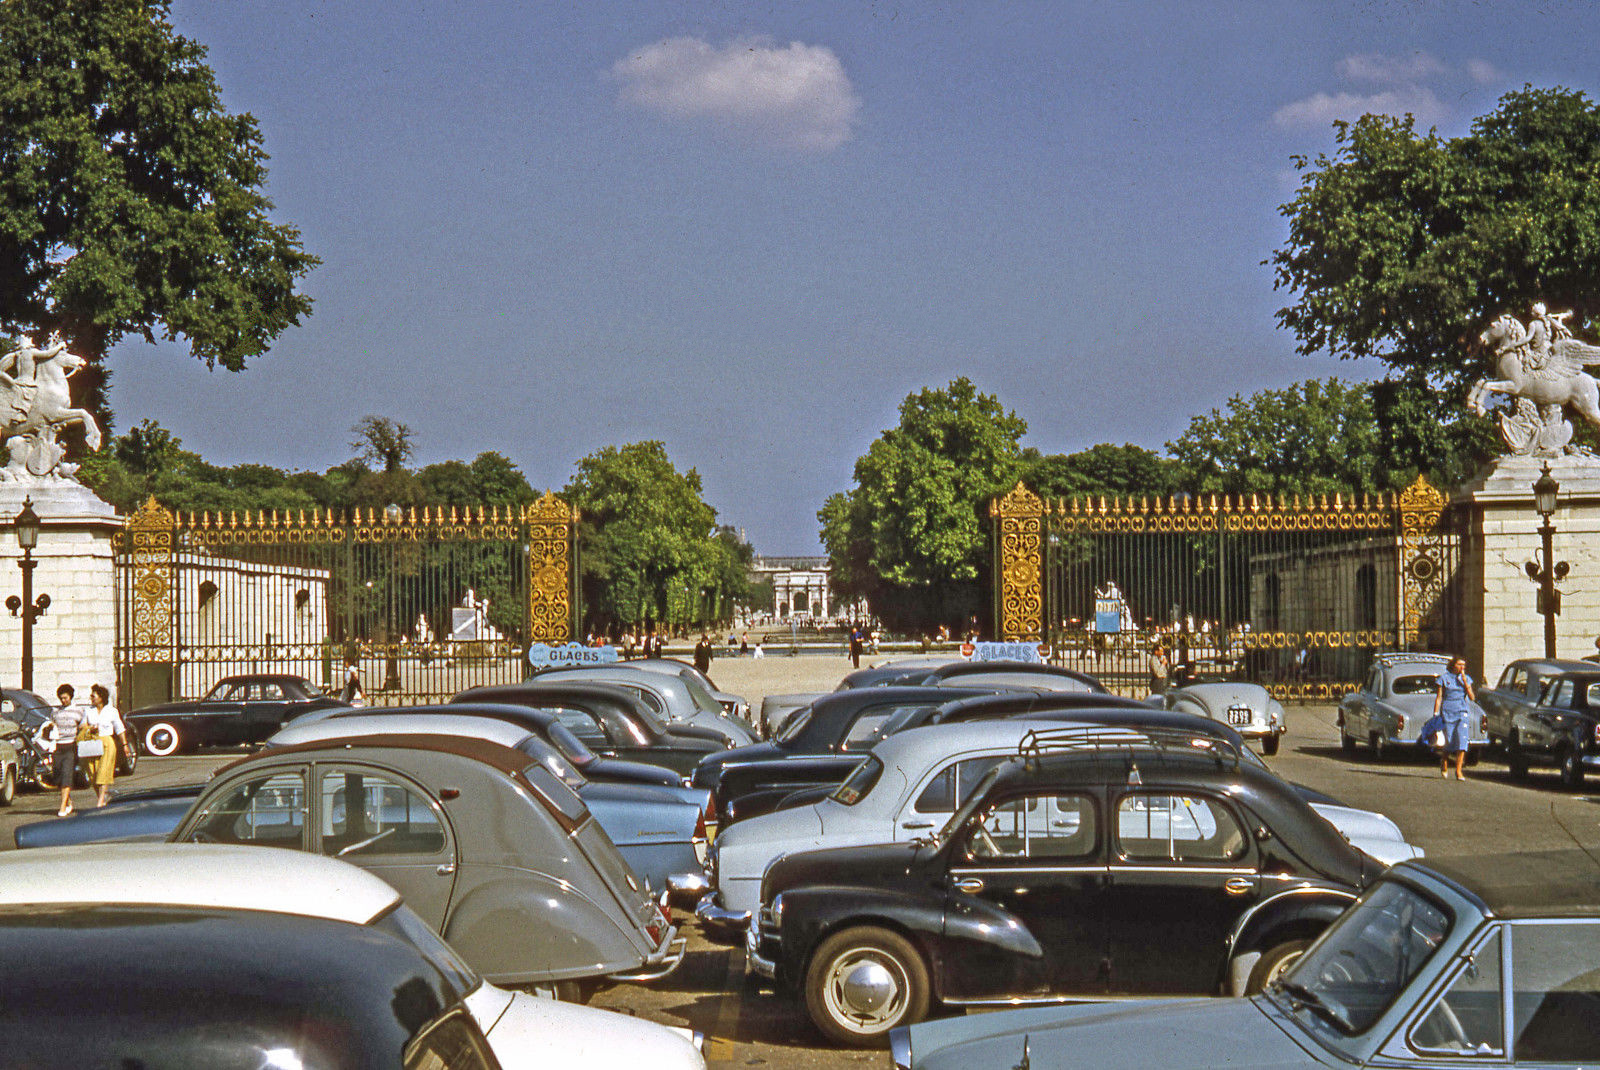 1958 Париж. Tuilleries Gardens Entrance From Place de la Concorde